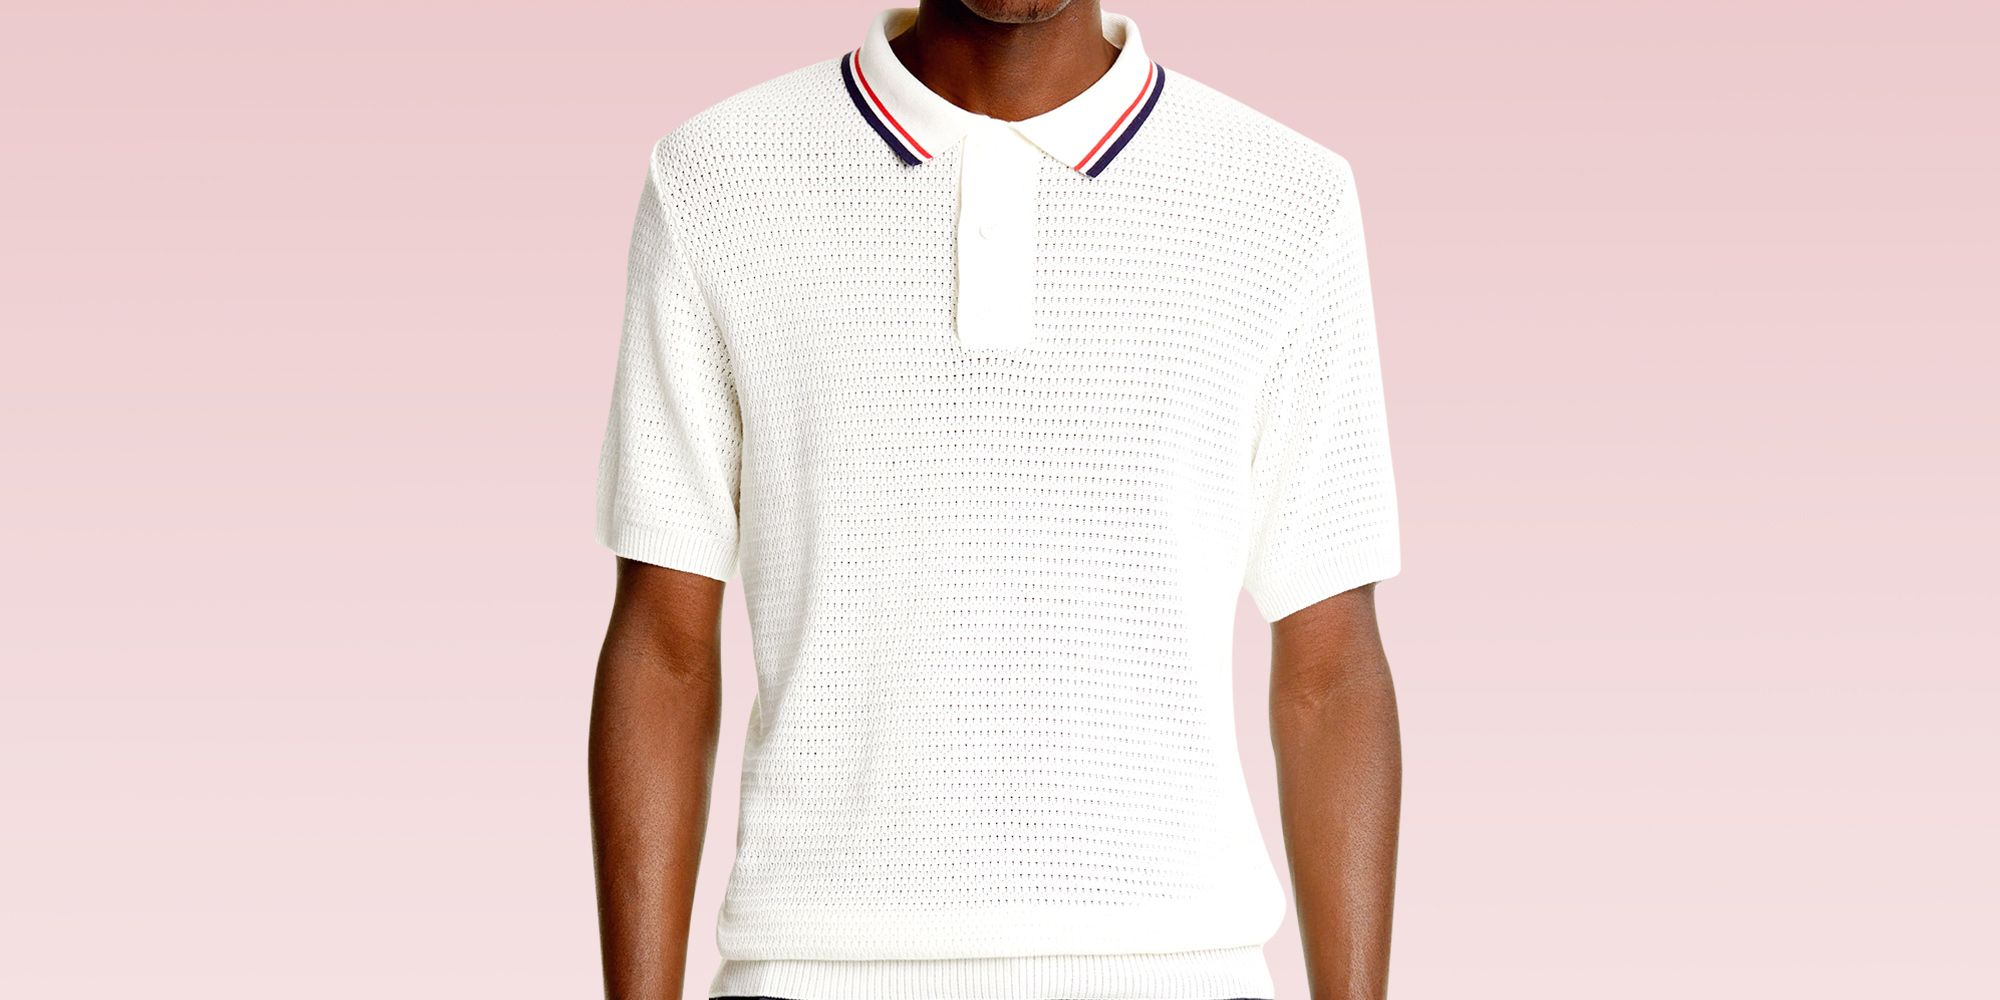 21 Best Polo Shirts For Men 2021 - Spring and Summer Polos to Buy Now